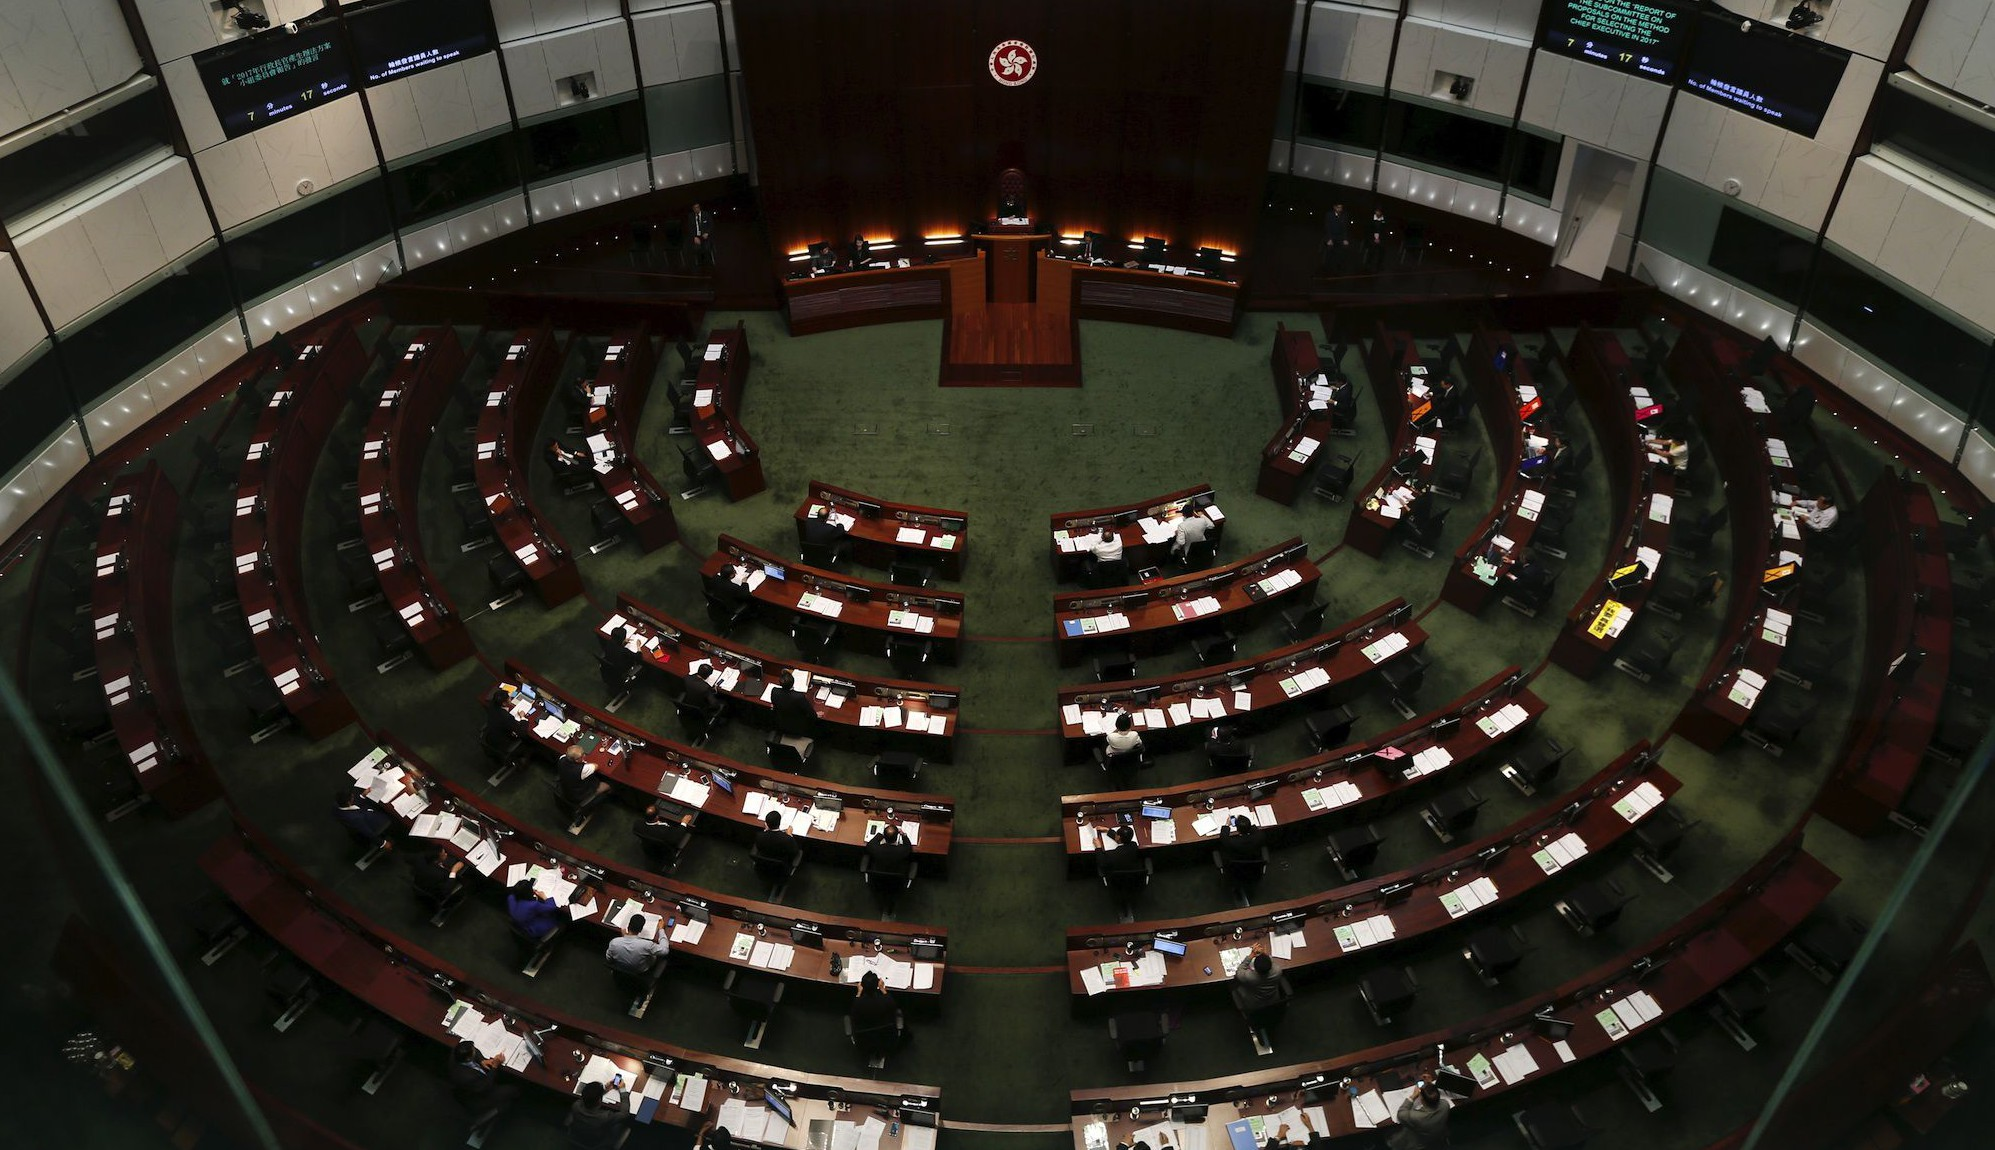 A general view of a Legislative Council meeting before a Beijing-backed electoral reform is debated in Hong Kong, China June 17, 2015. More than a thousand people converged on Hong Kong's Legislative Council early on Wednesday before lawmakers debate a Beijing-backed electoral reform plan that could trigger fresh protests in the Chinese-controlled city.